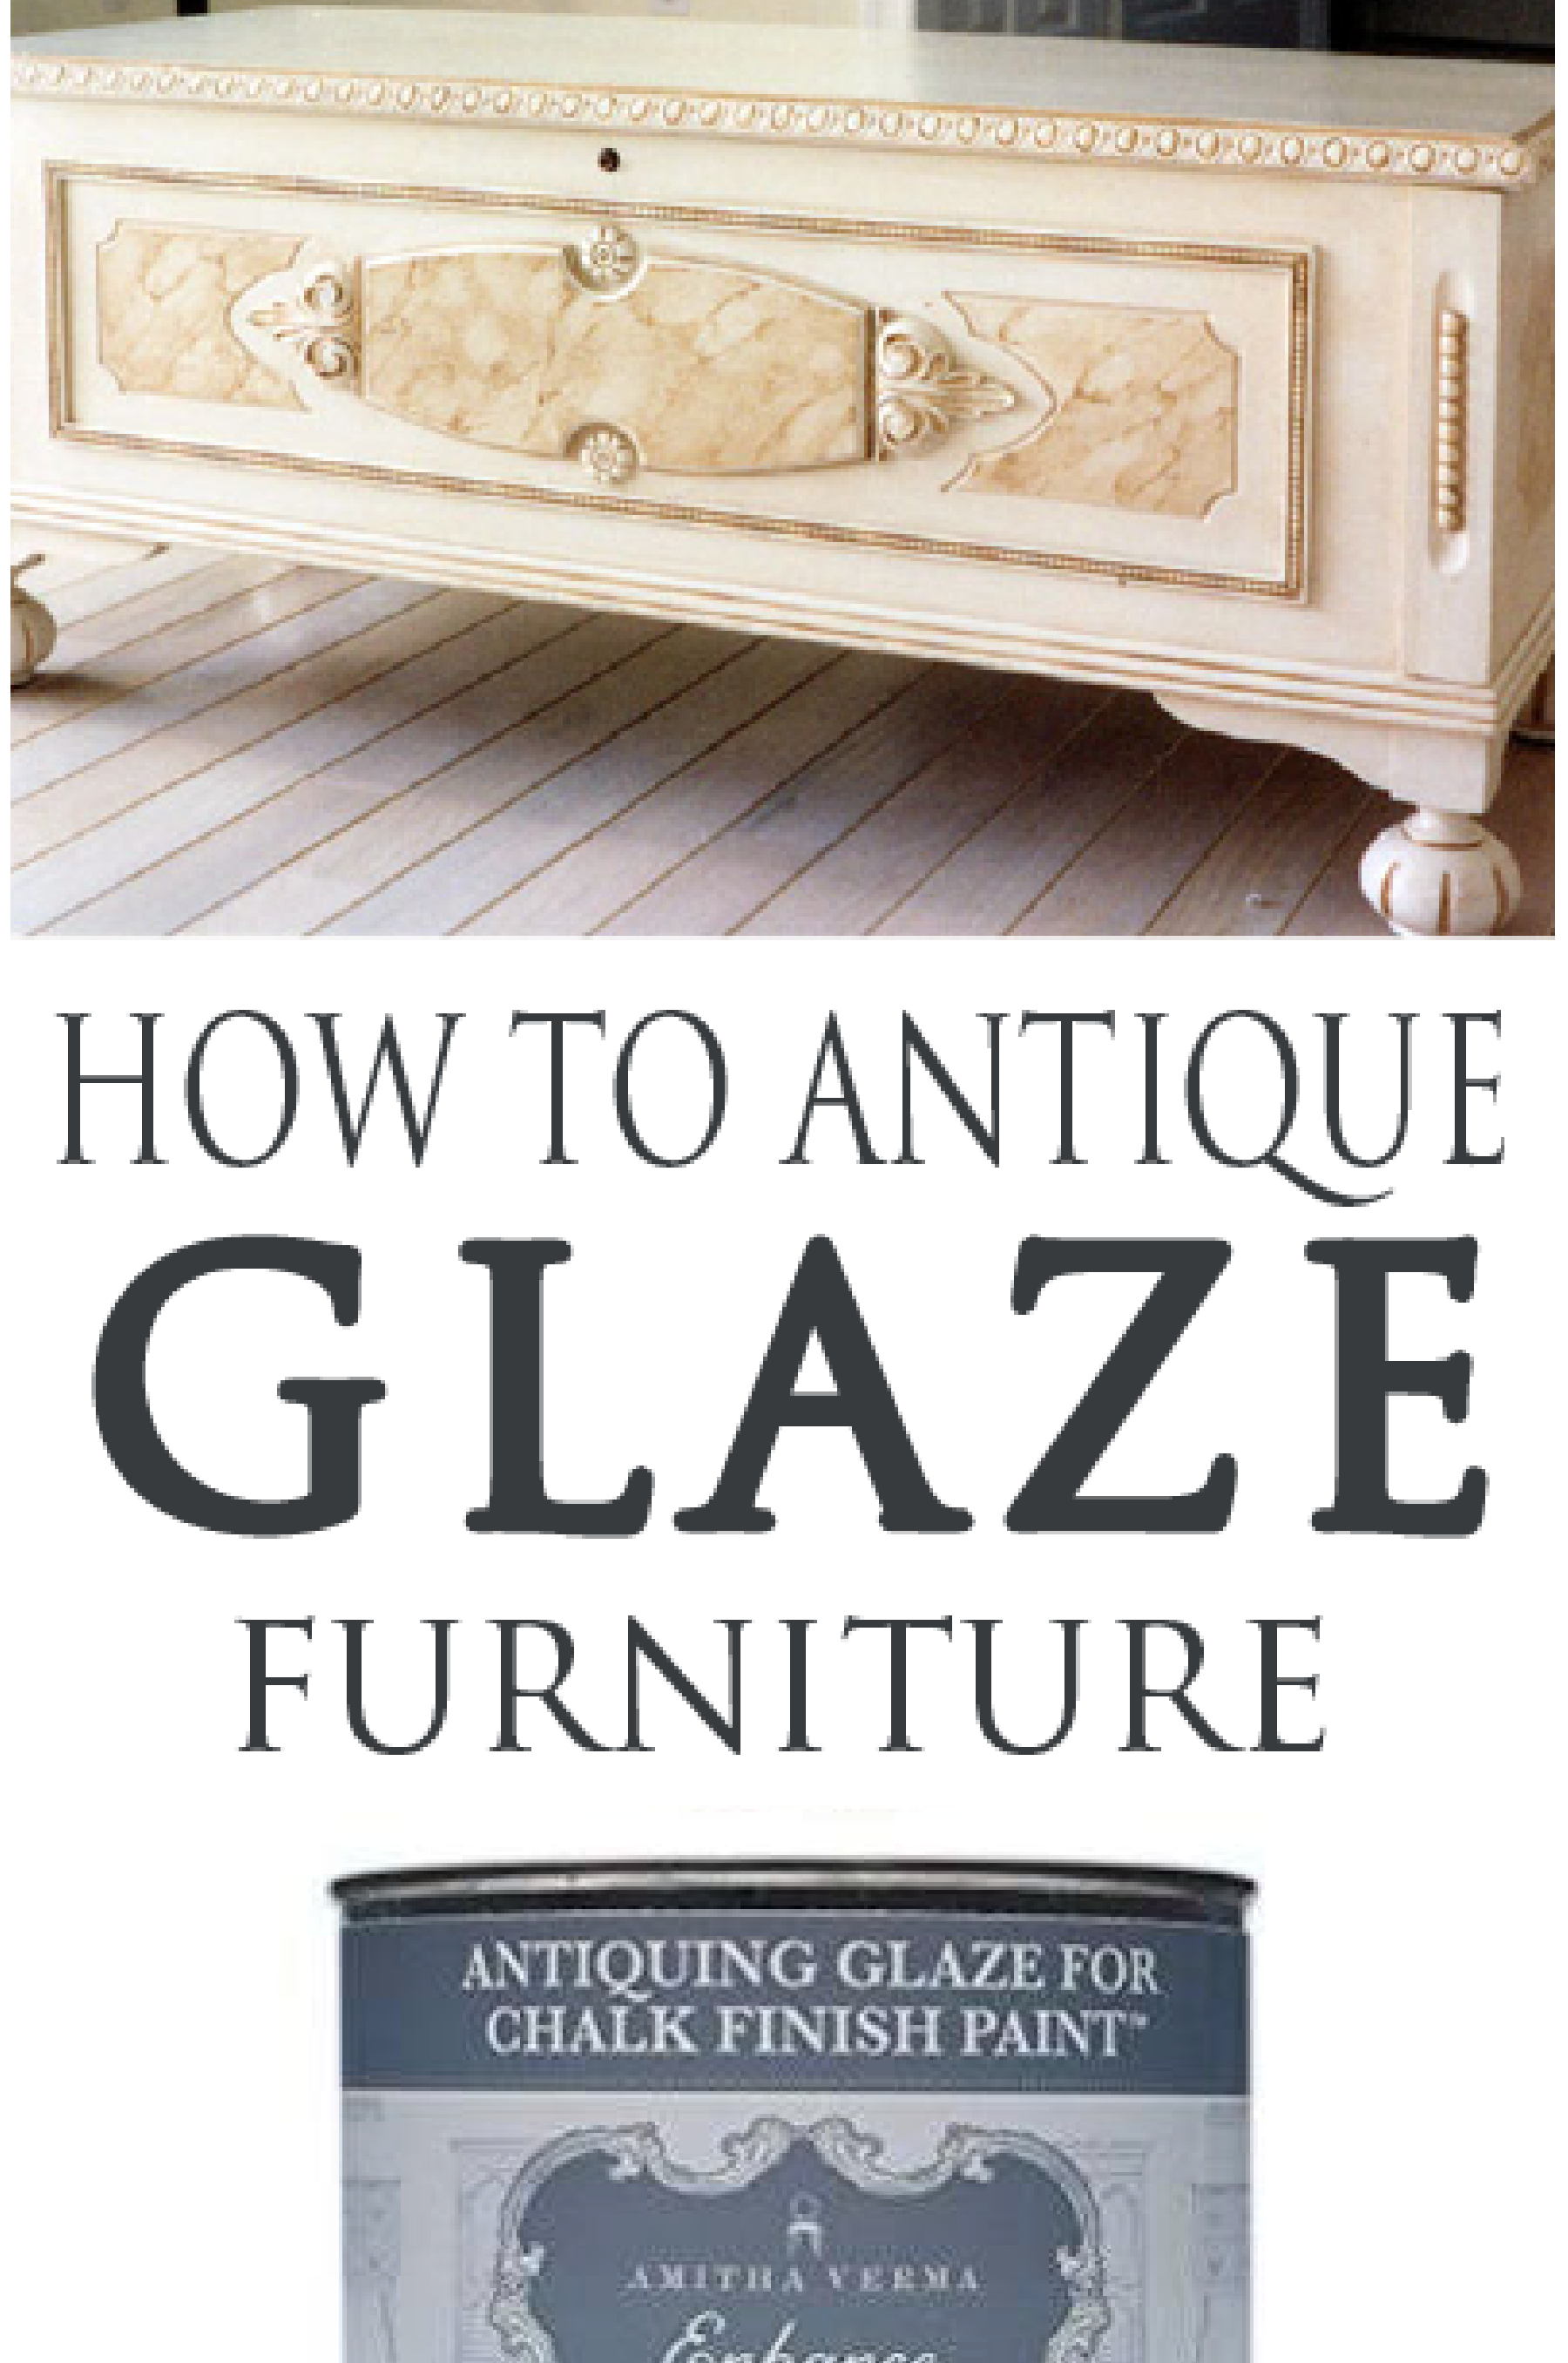 Learn how to antique glaze correctly with these easy steps.